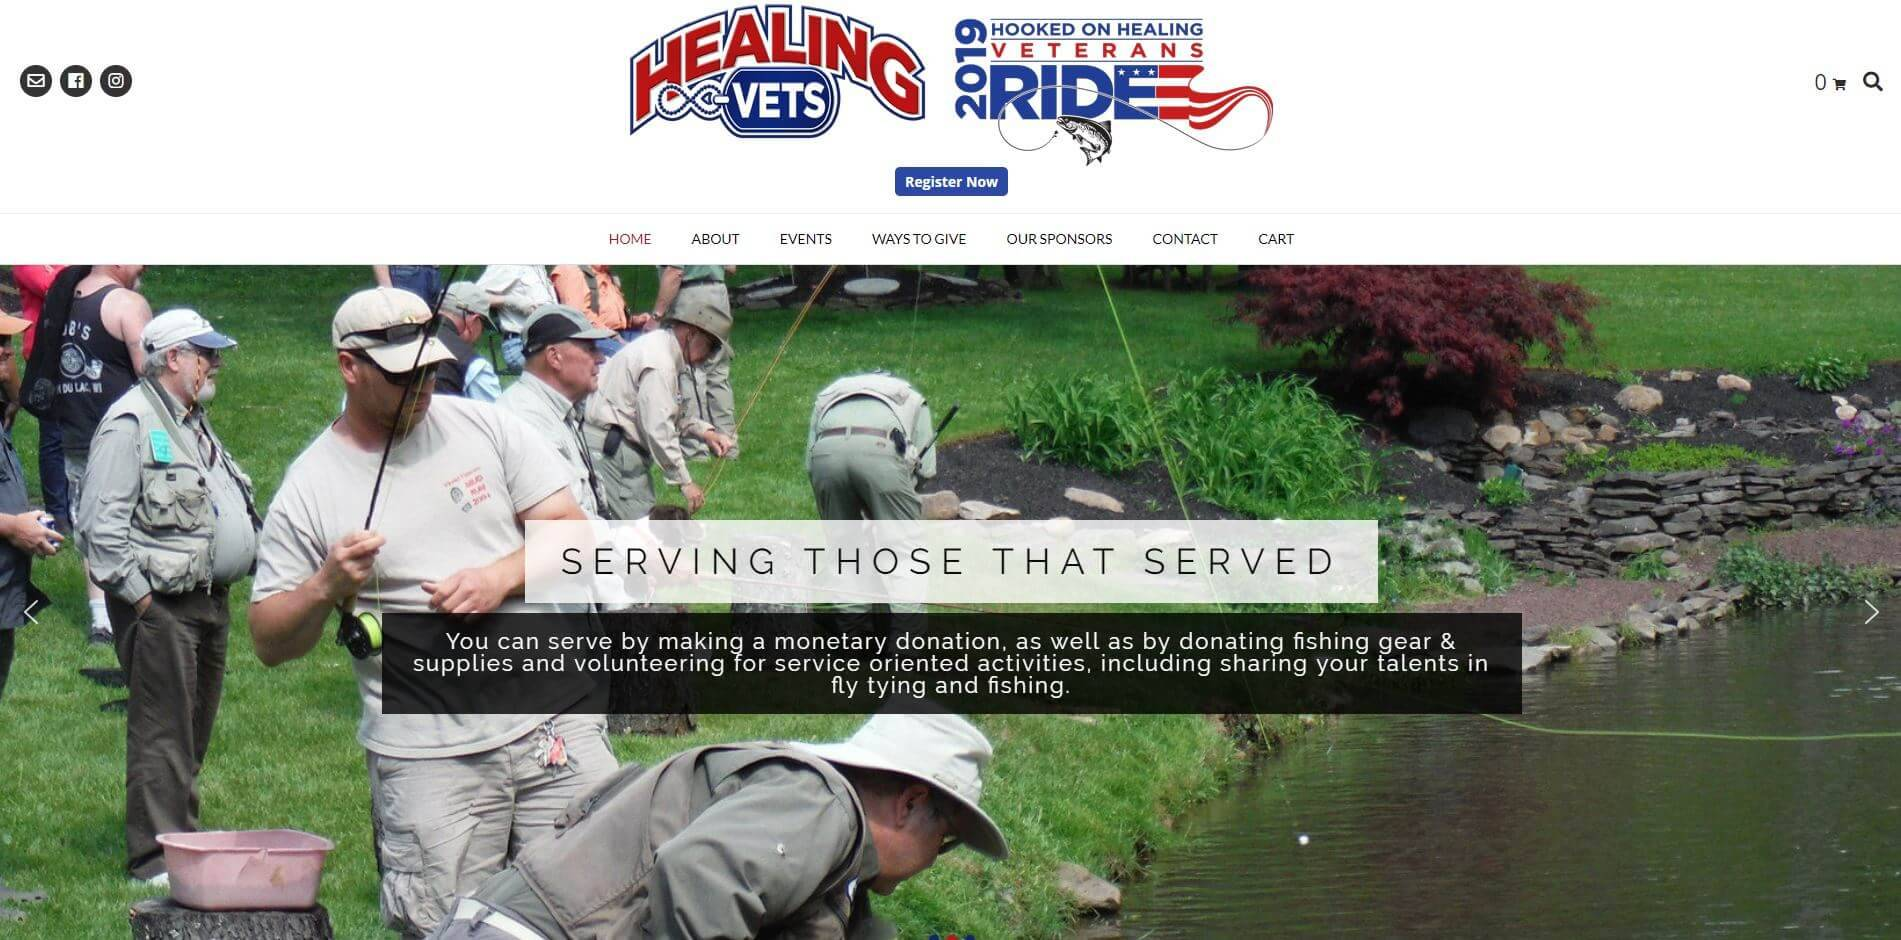 Healing Vets - healingvets.org - Website Developed by JTag Internet Design